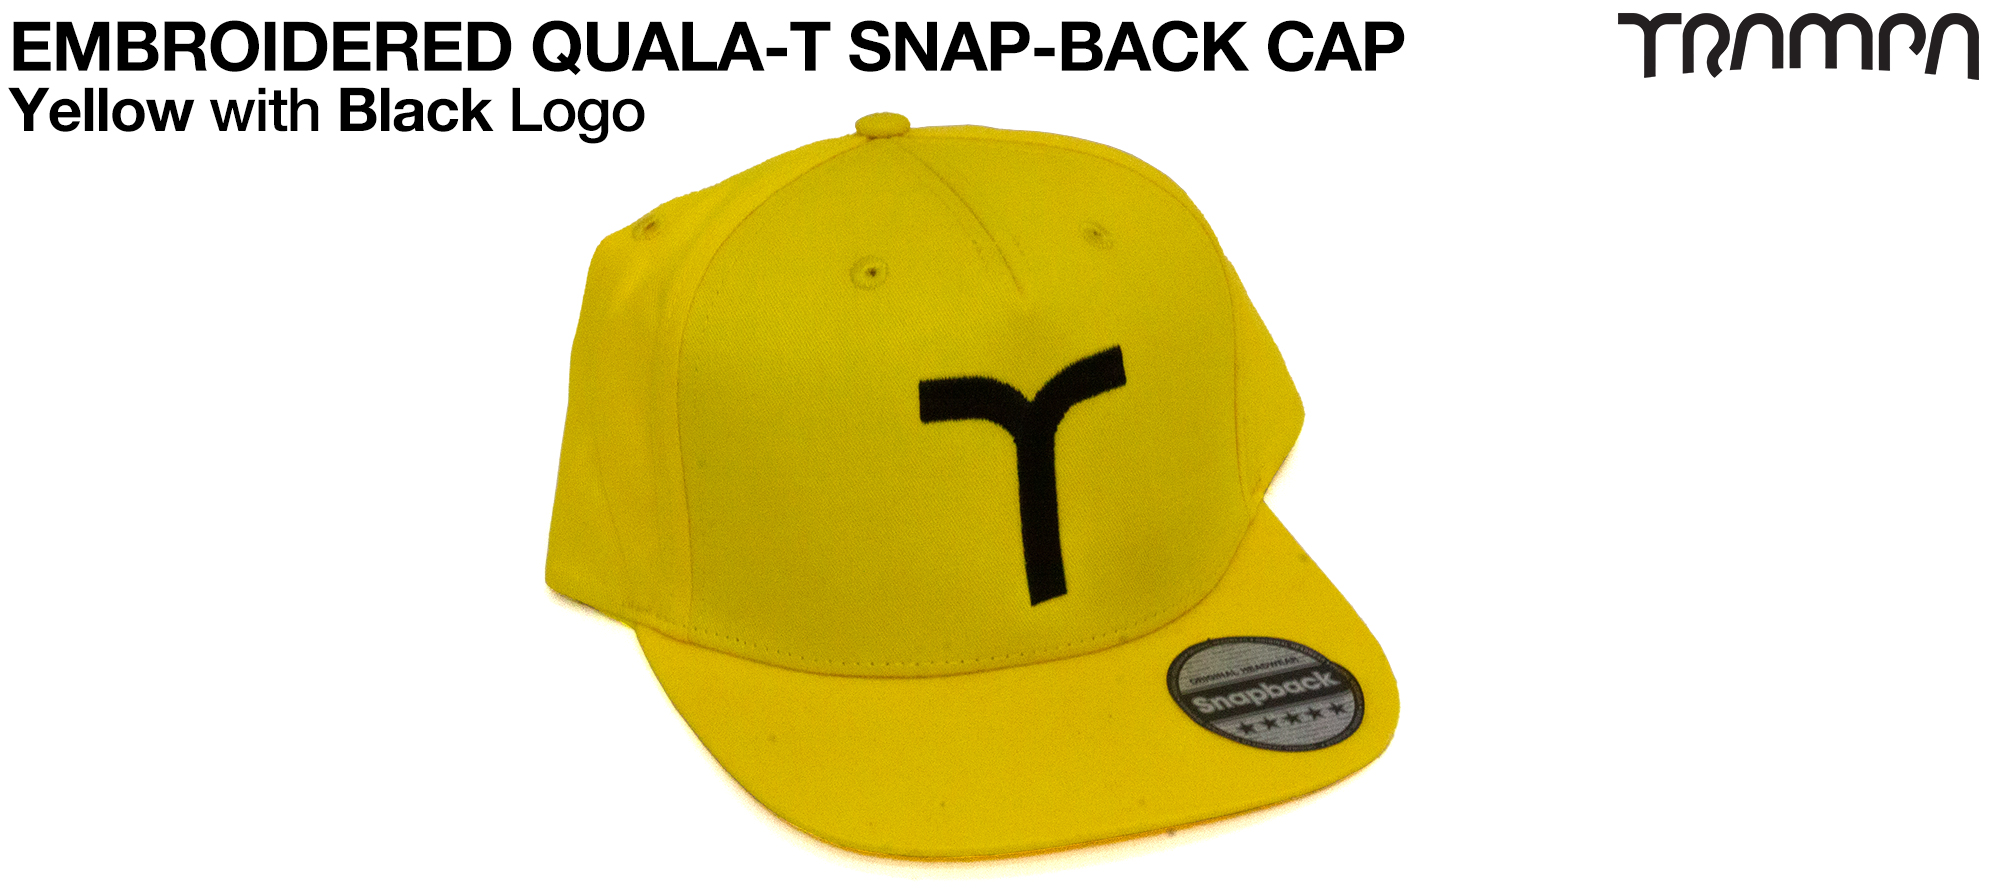 YELLOW SNAPBACK Cap with BLACK QUALA-T logo embroidered